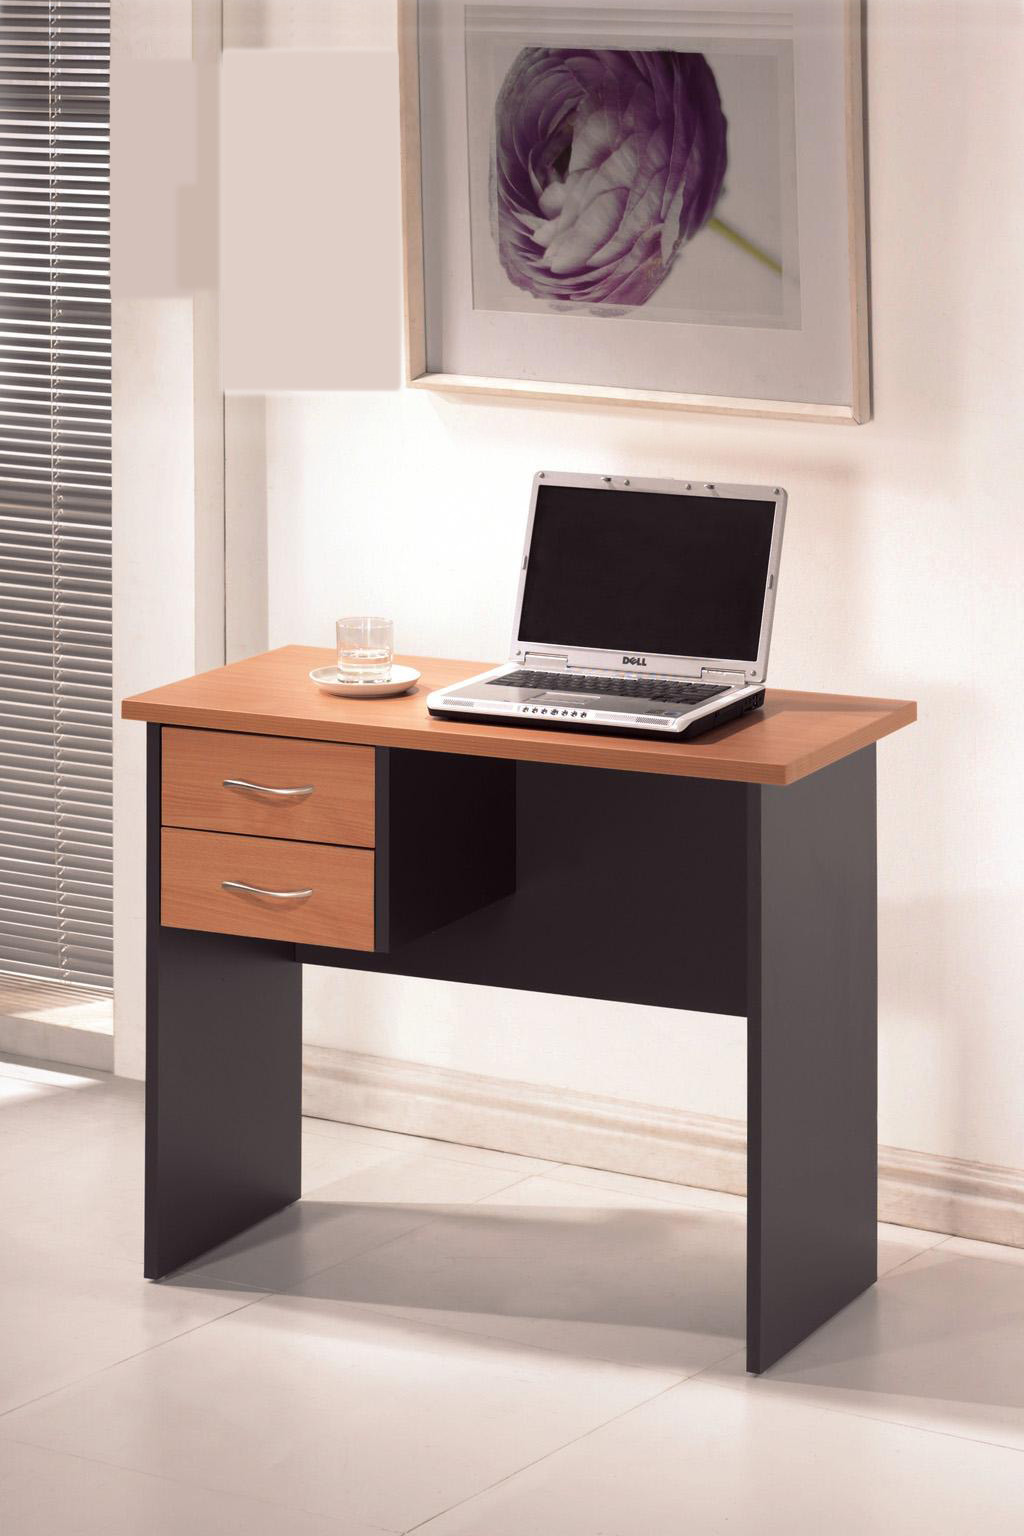 Computer Office Table Manufacturers in Chennai Computer  : 1719 from www.mahadevfurniture.com size 1024 x 1536 jpeg 220kB